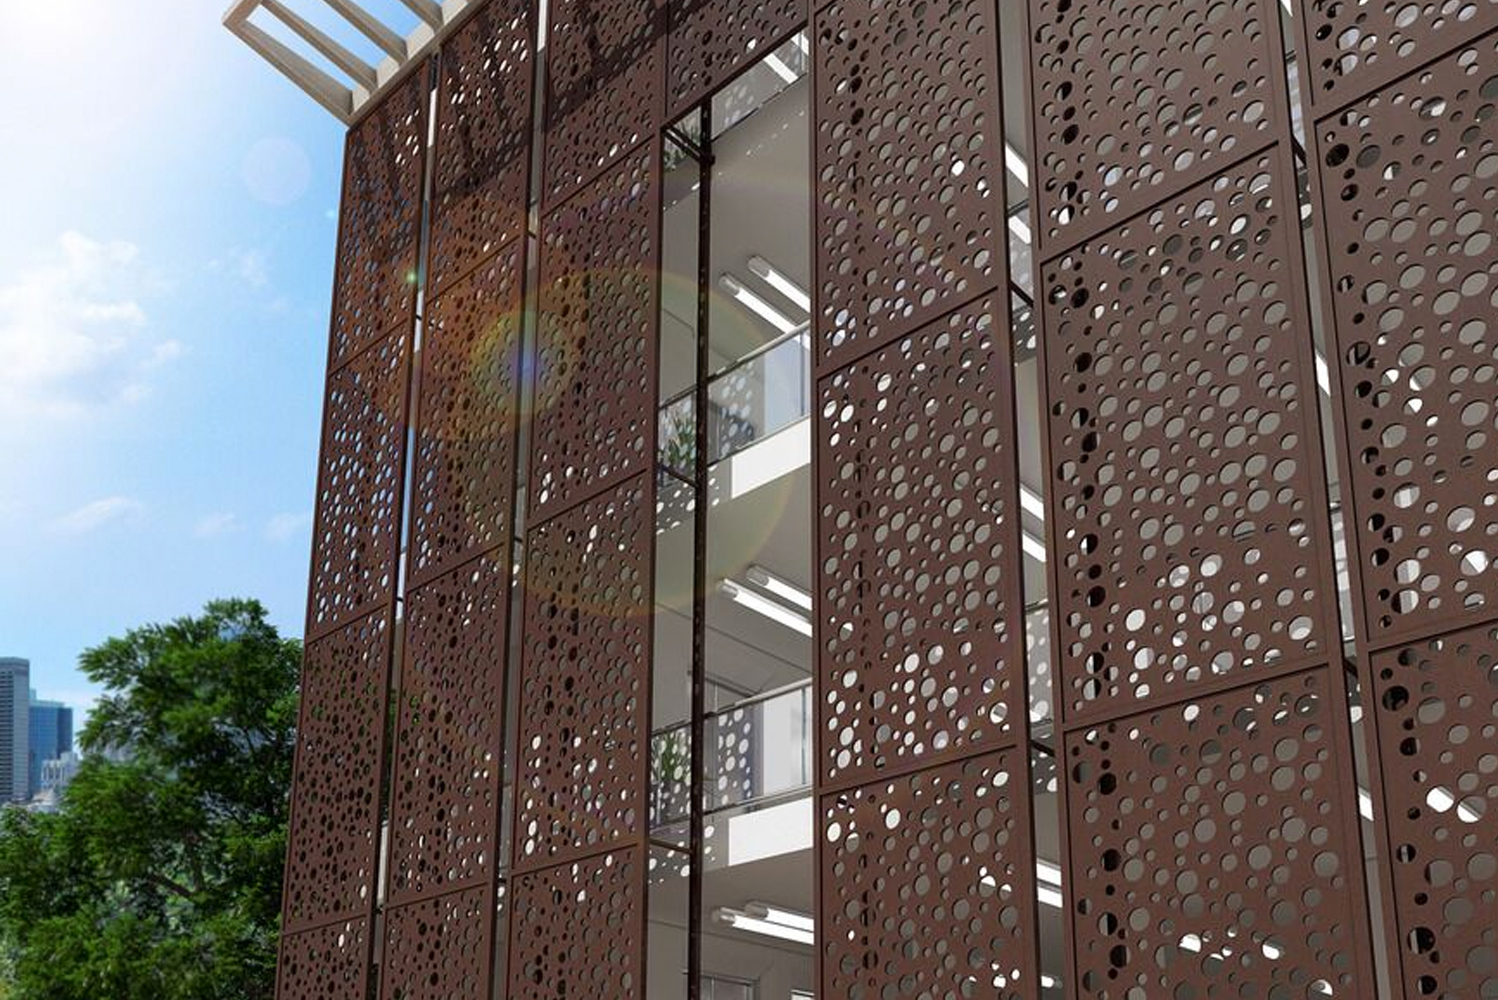 Móz designs and fabricates architectural metal sheets, columns, walls and room dividers in Oakland, CA.